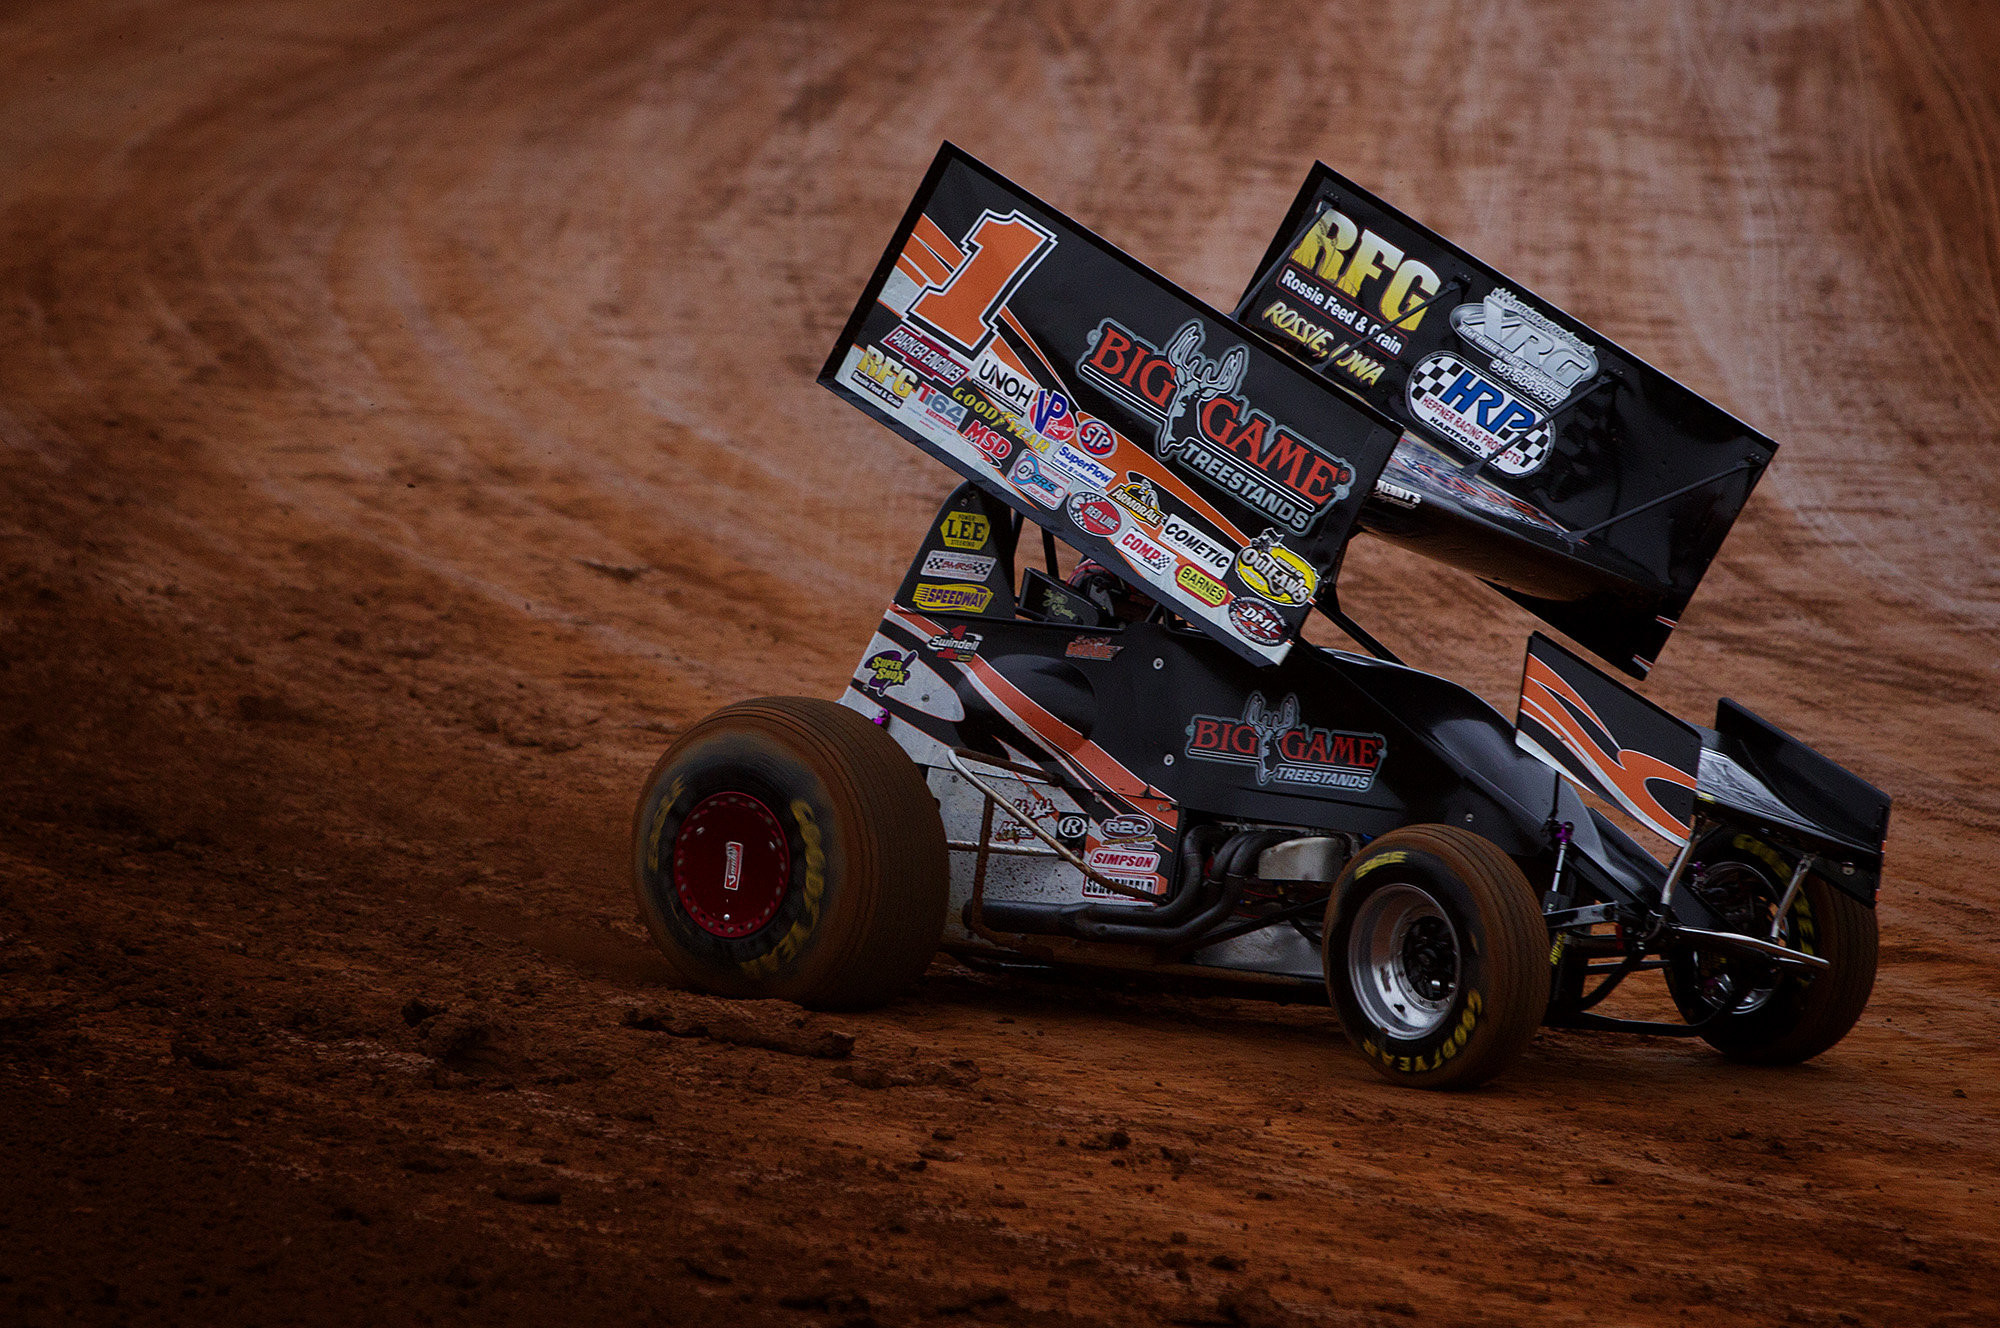 Car racing have helped the locals compete with the World of Outlaws .